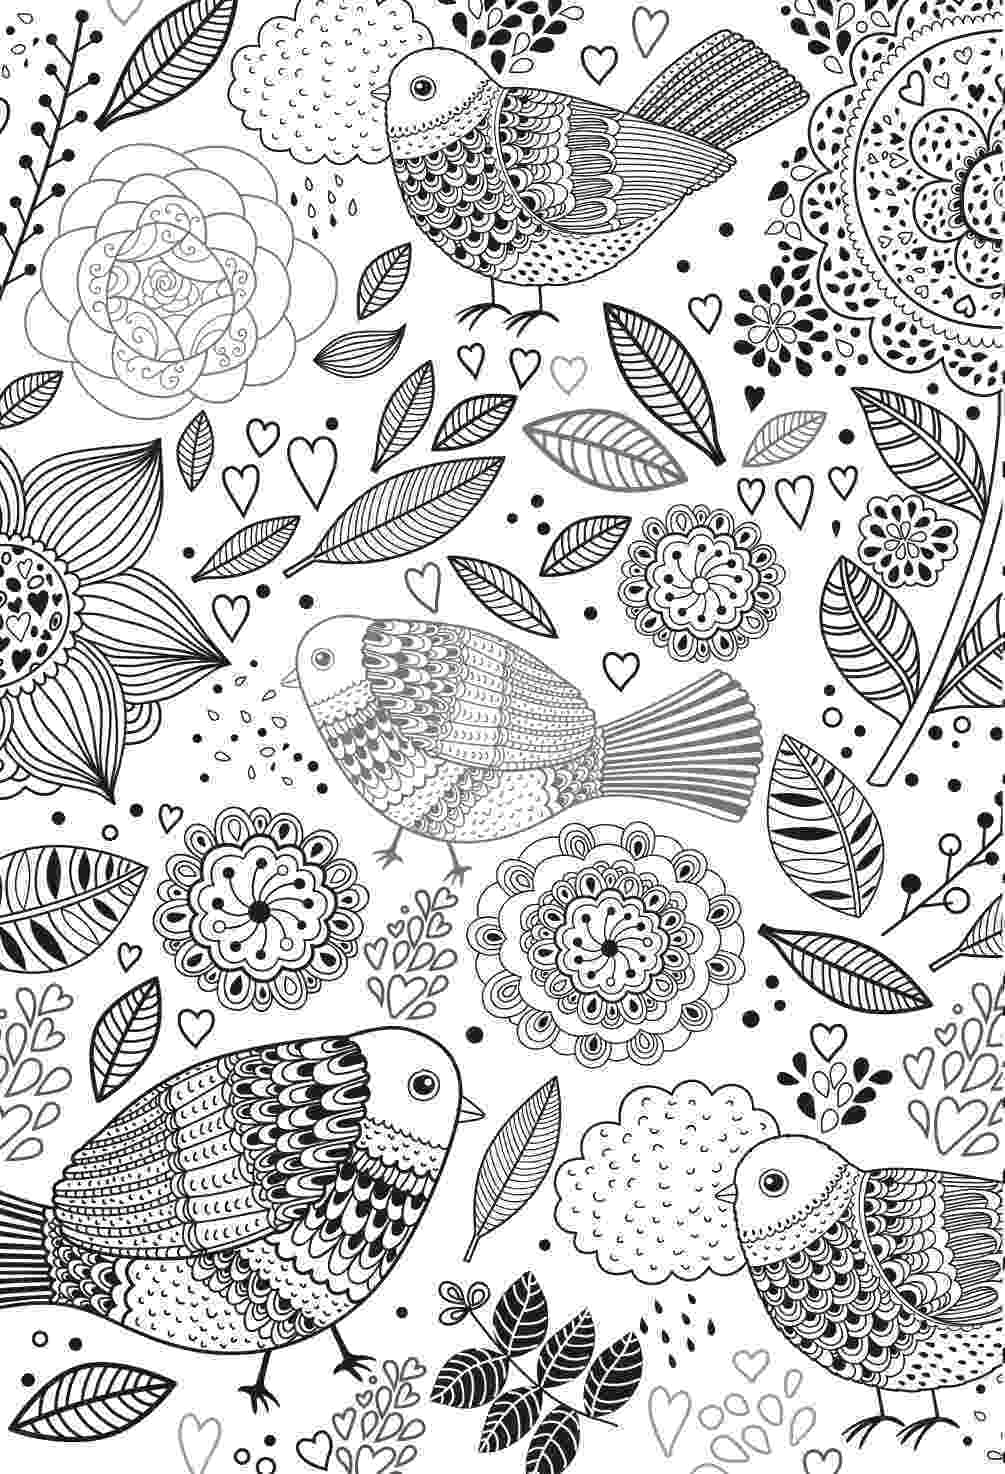 coloring pages for adults mandala the big flower mandalas adult coloring pages pages adults coloring for mandala